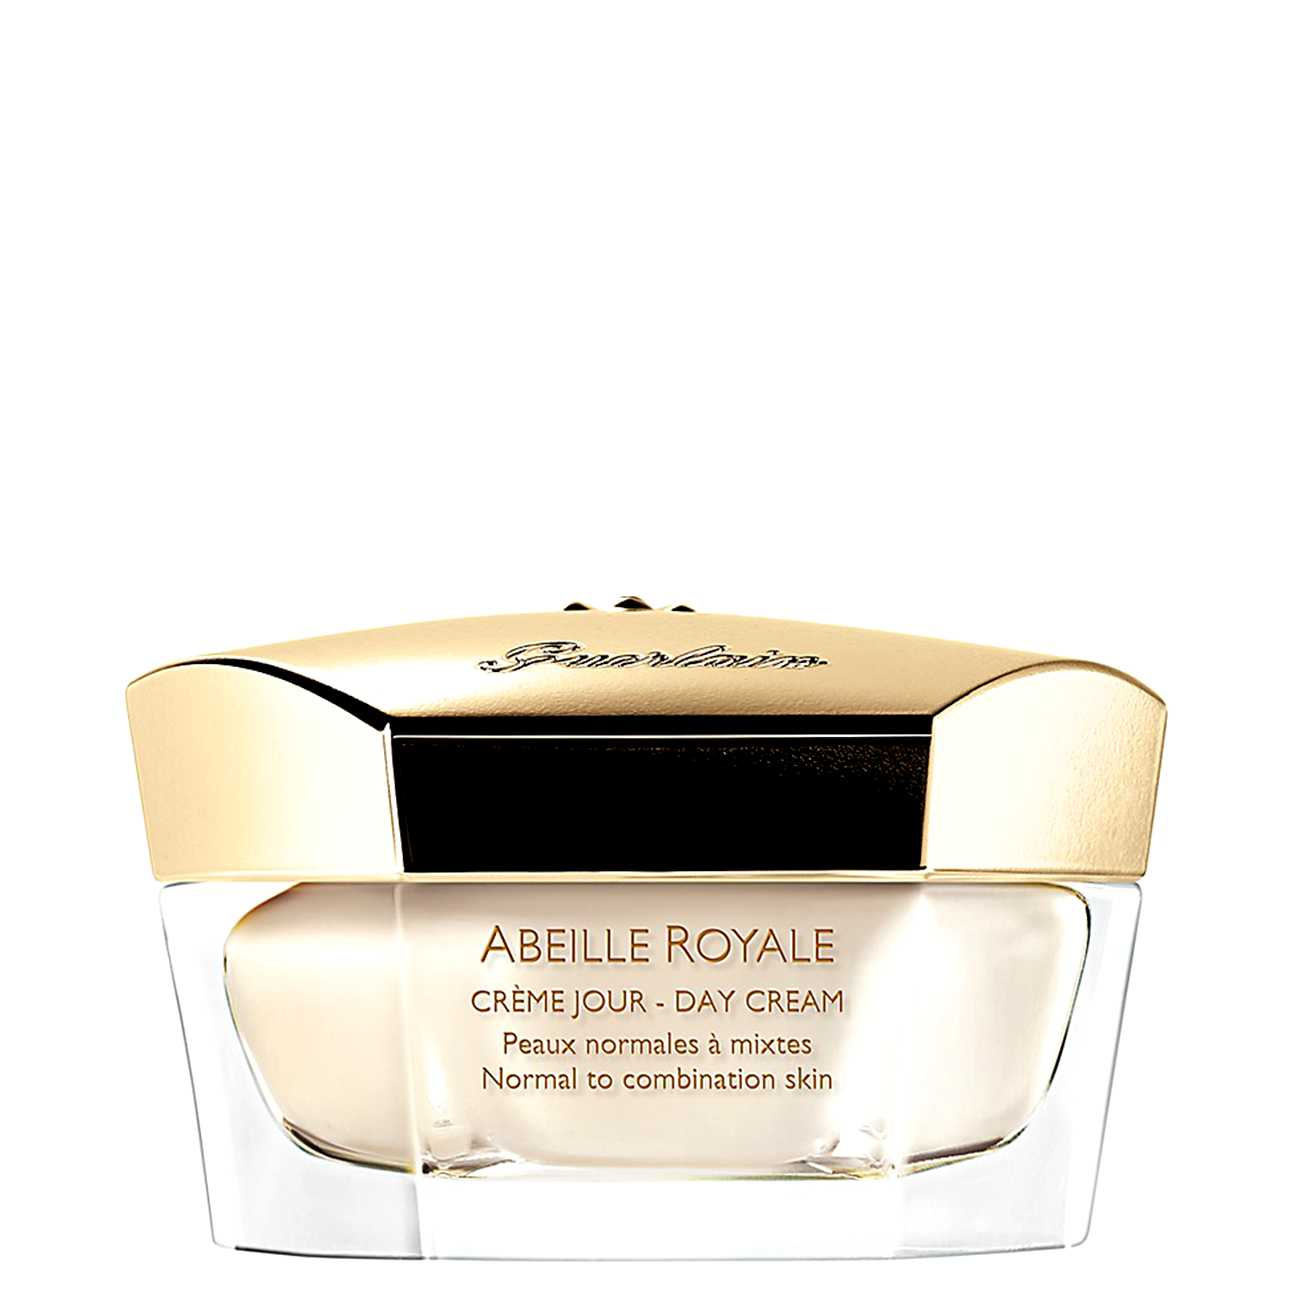 ABEILLE ROYALE DAY CREAM NORMAL TO COMBINATION SKIN